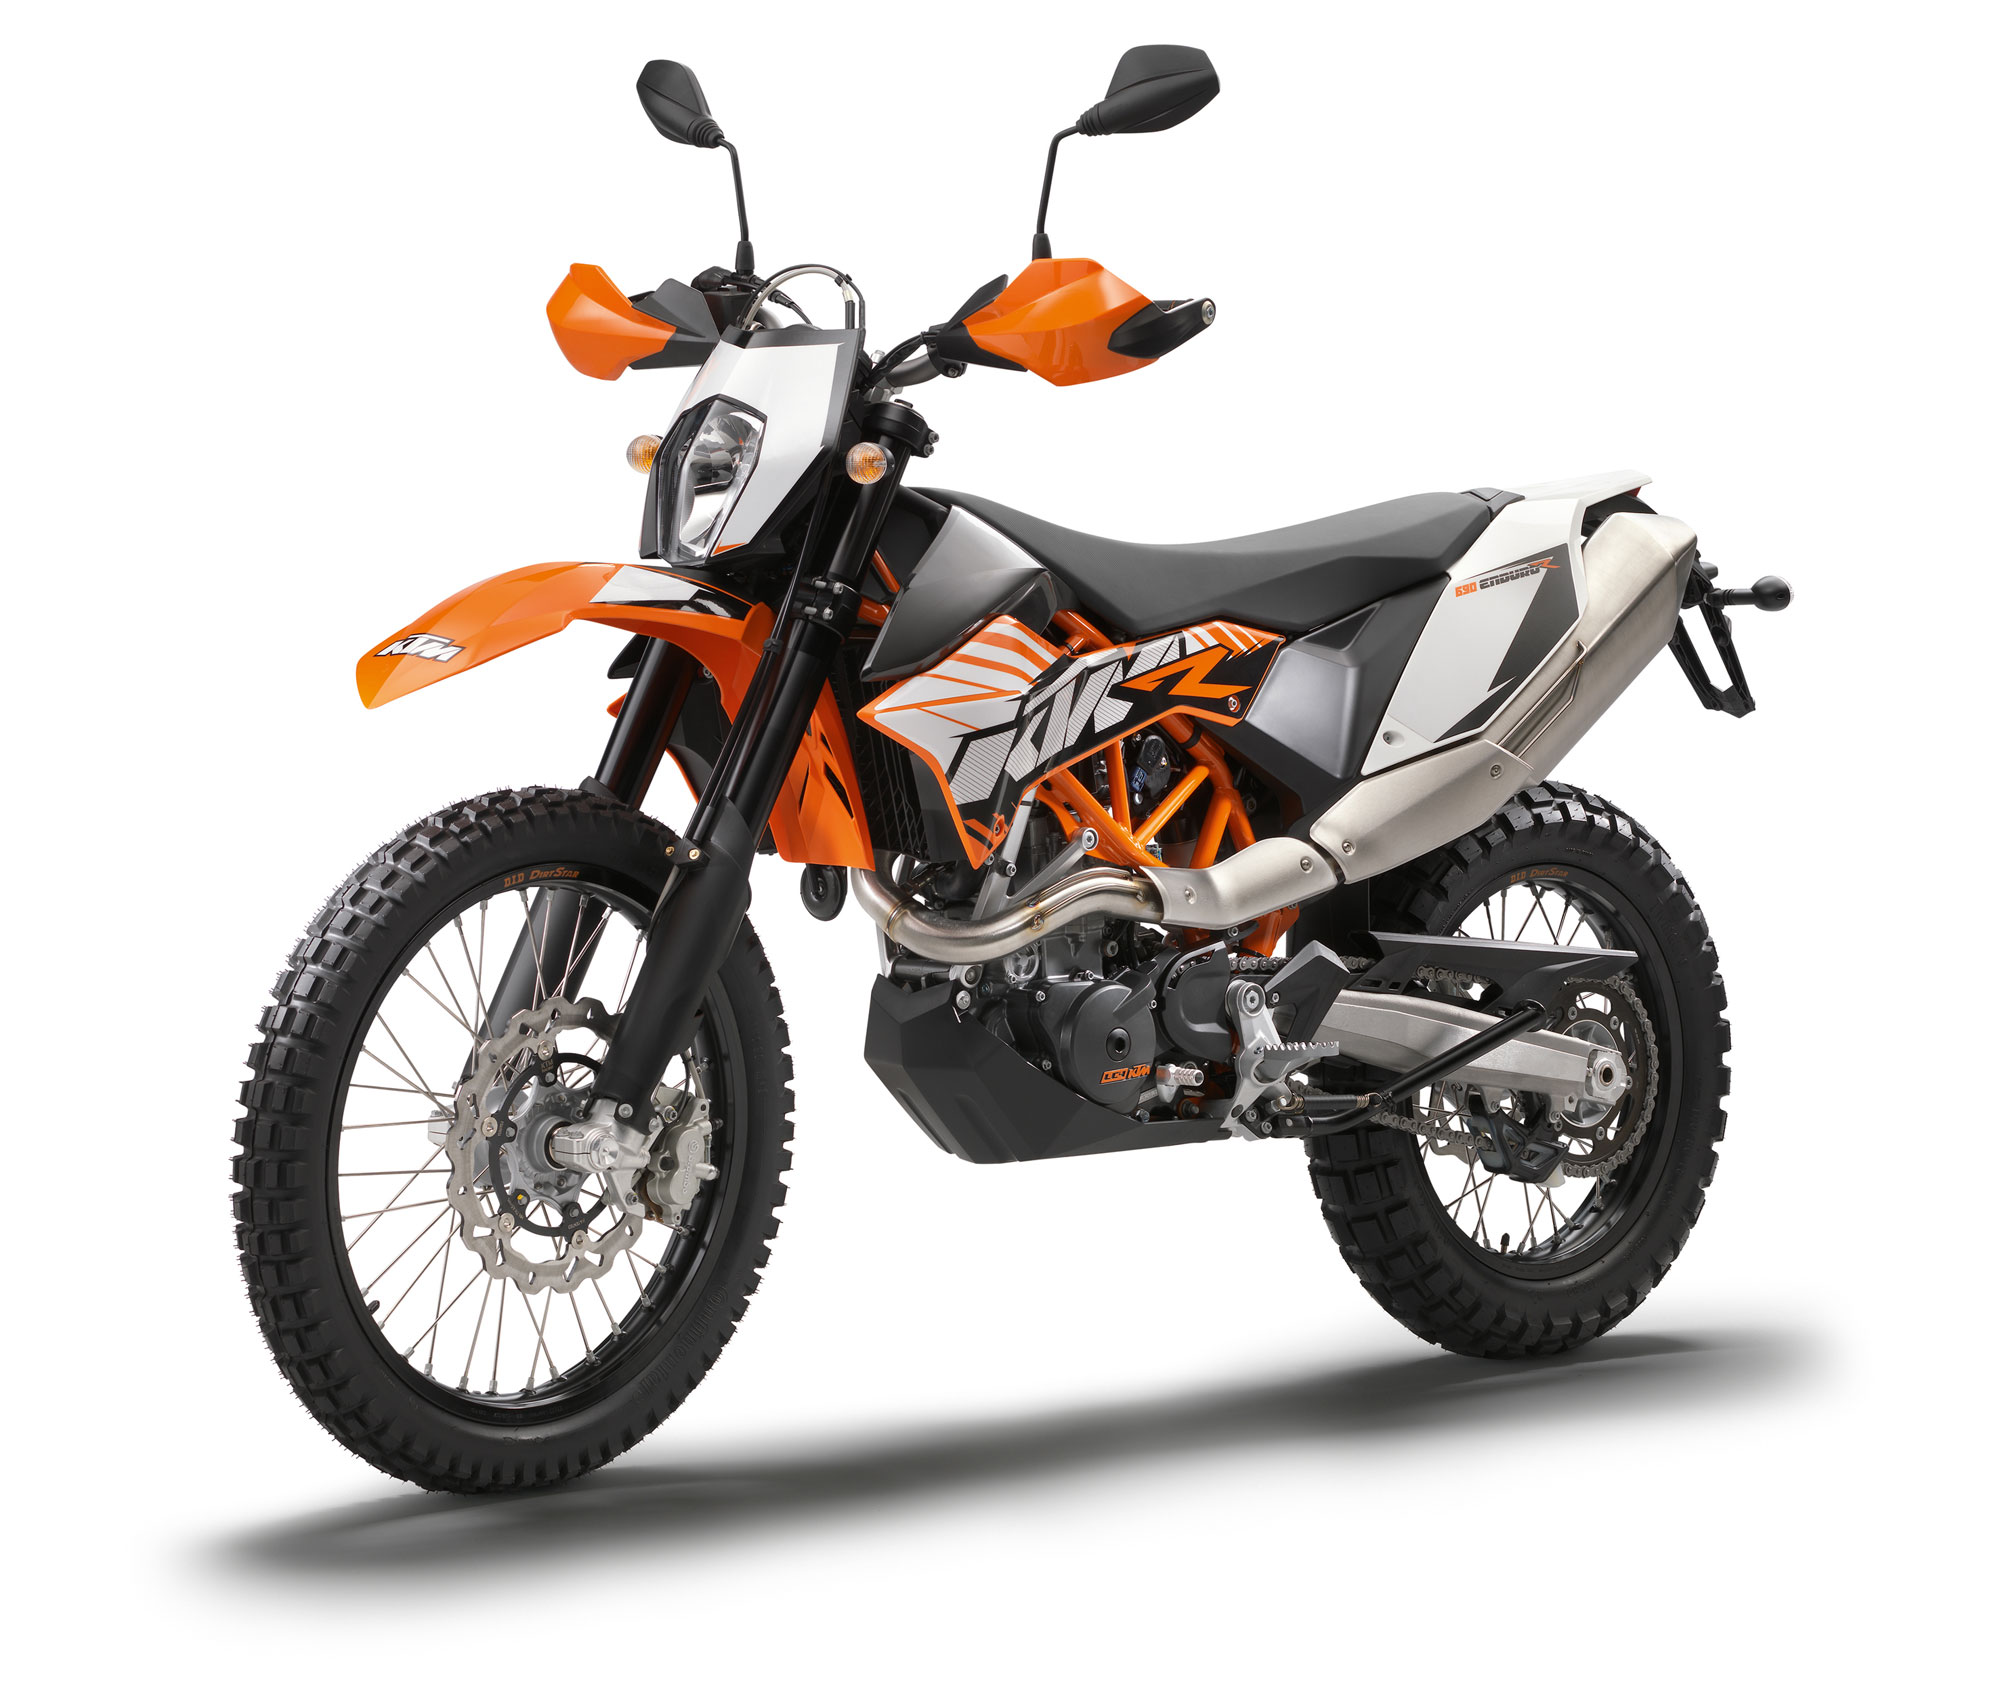 2012 ktm 690 enduro r review. Black Bedroom Furniture Sets. Home Design Ideas